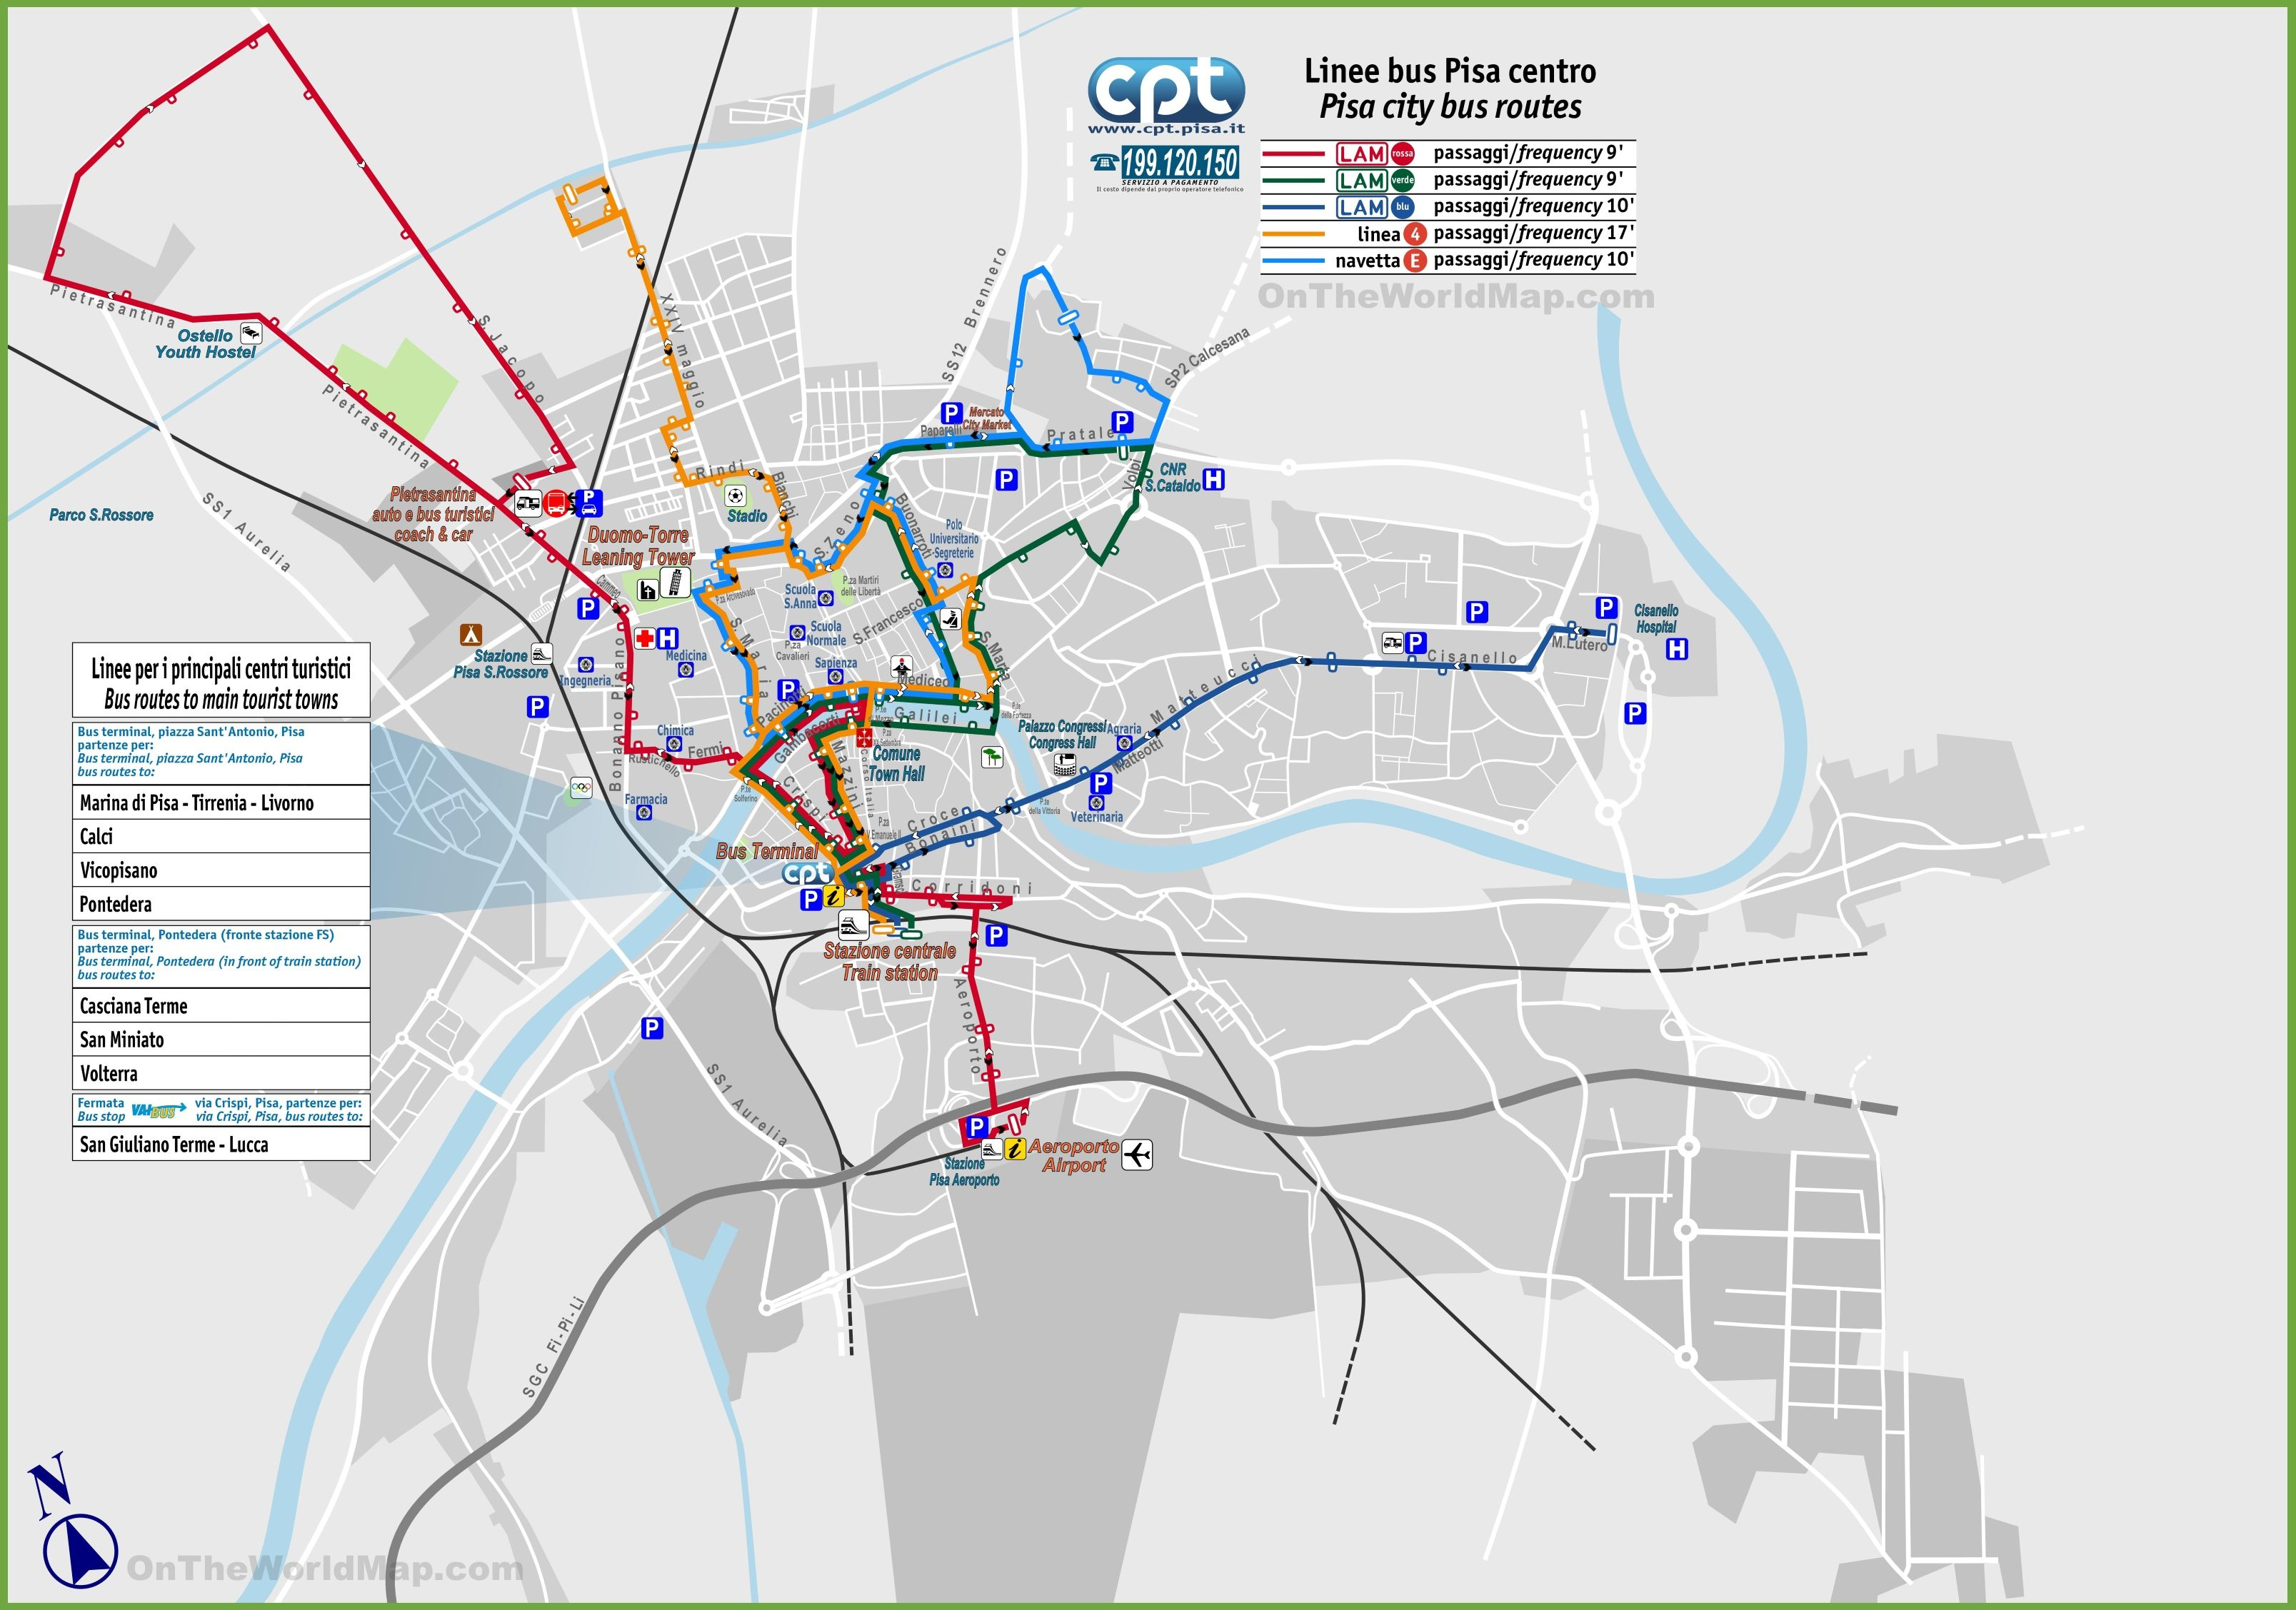 Best 25+ Bus route map ideas on Pinterest | Germany travel ... Quebec City Bus Map on jamestown bus map, calgary bus map, luxembourg city bus map, green bay bus map, la paz bus map, mumbai bus map, tallinn bus map, toronto bus map, new haven bus map, bangkok bus map, brampton bus map, budapest bus map, kirkland bus map, richmond bus map, yokohama bus map, edinburgh bus map, saguenay quebec map, niagara falls bus map, wellington bus map, detroit bus map,